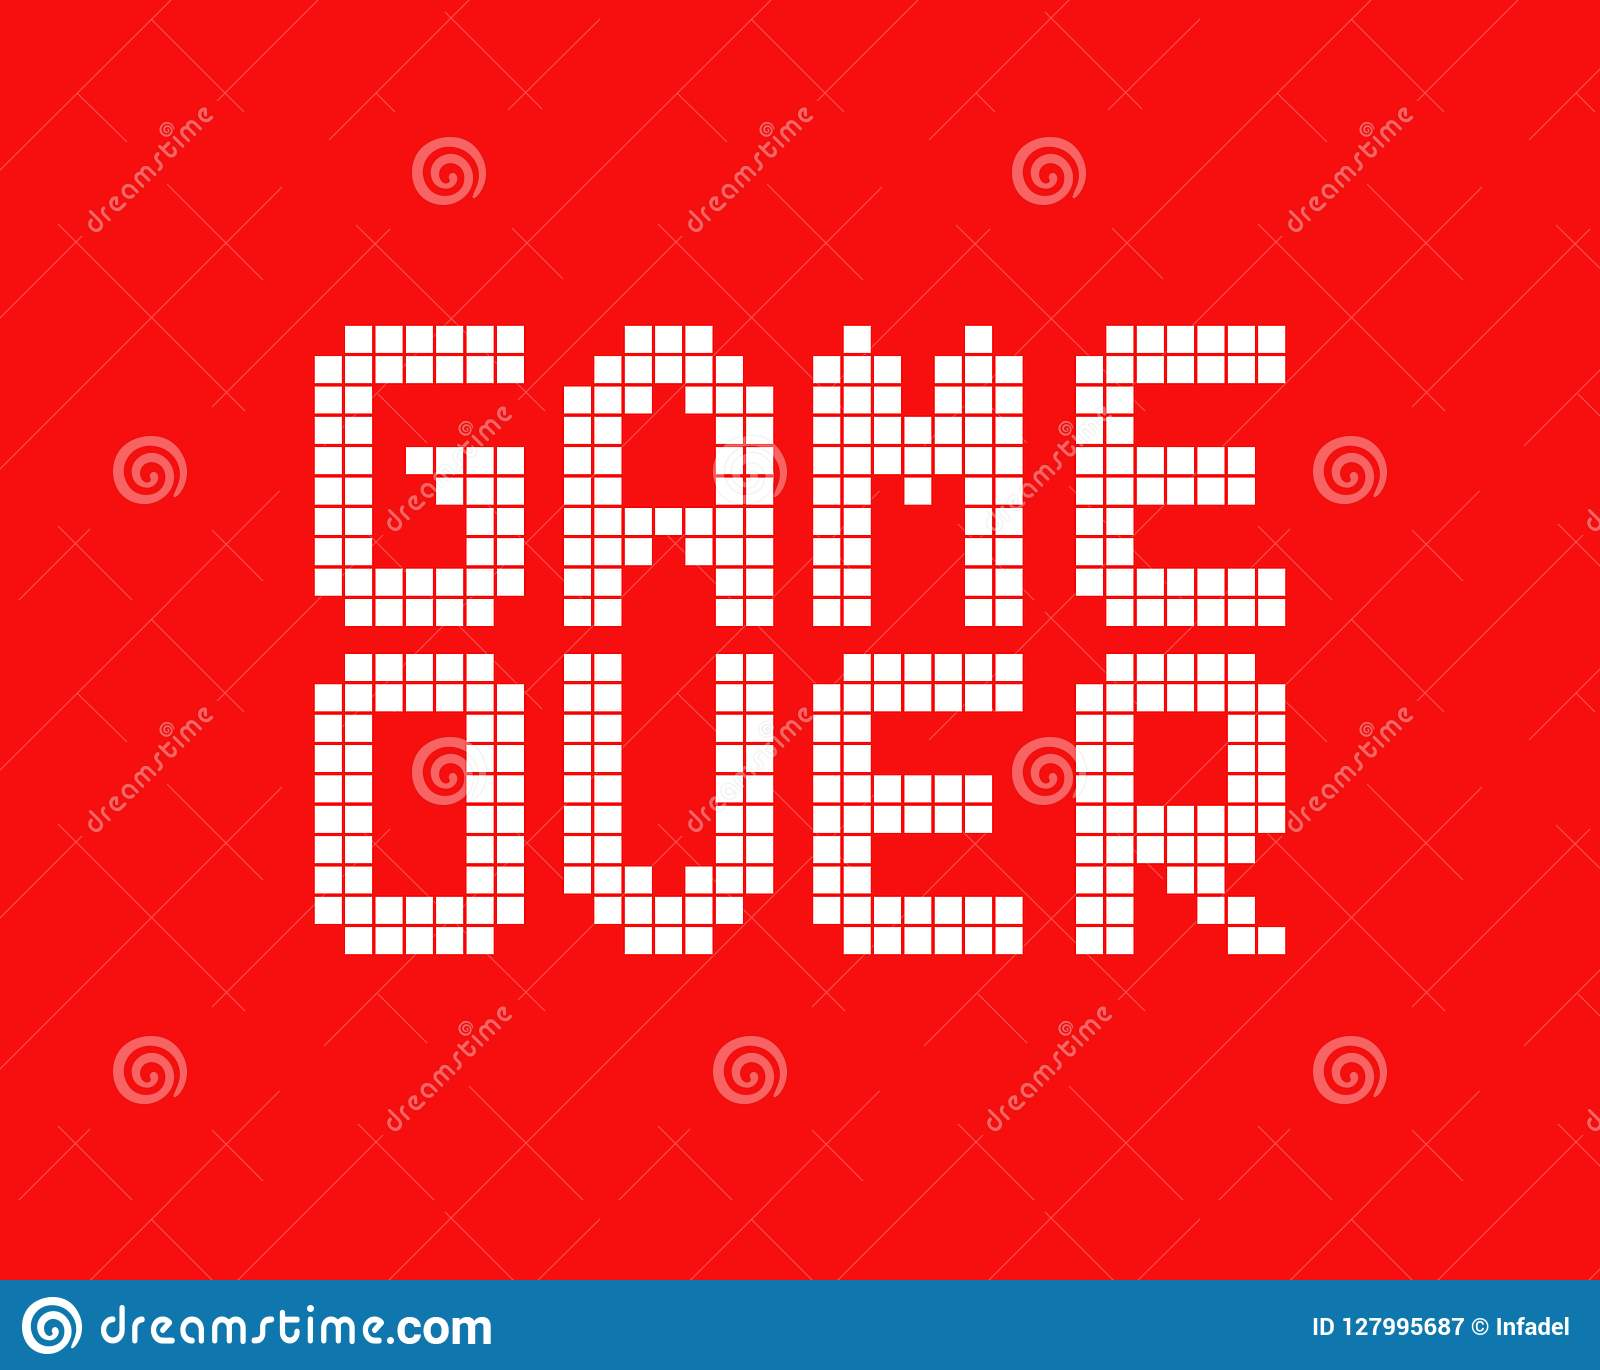 White Game Over Logo In Pixel Art Style Stock Vector